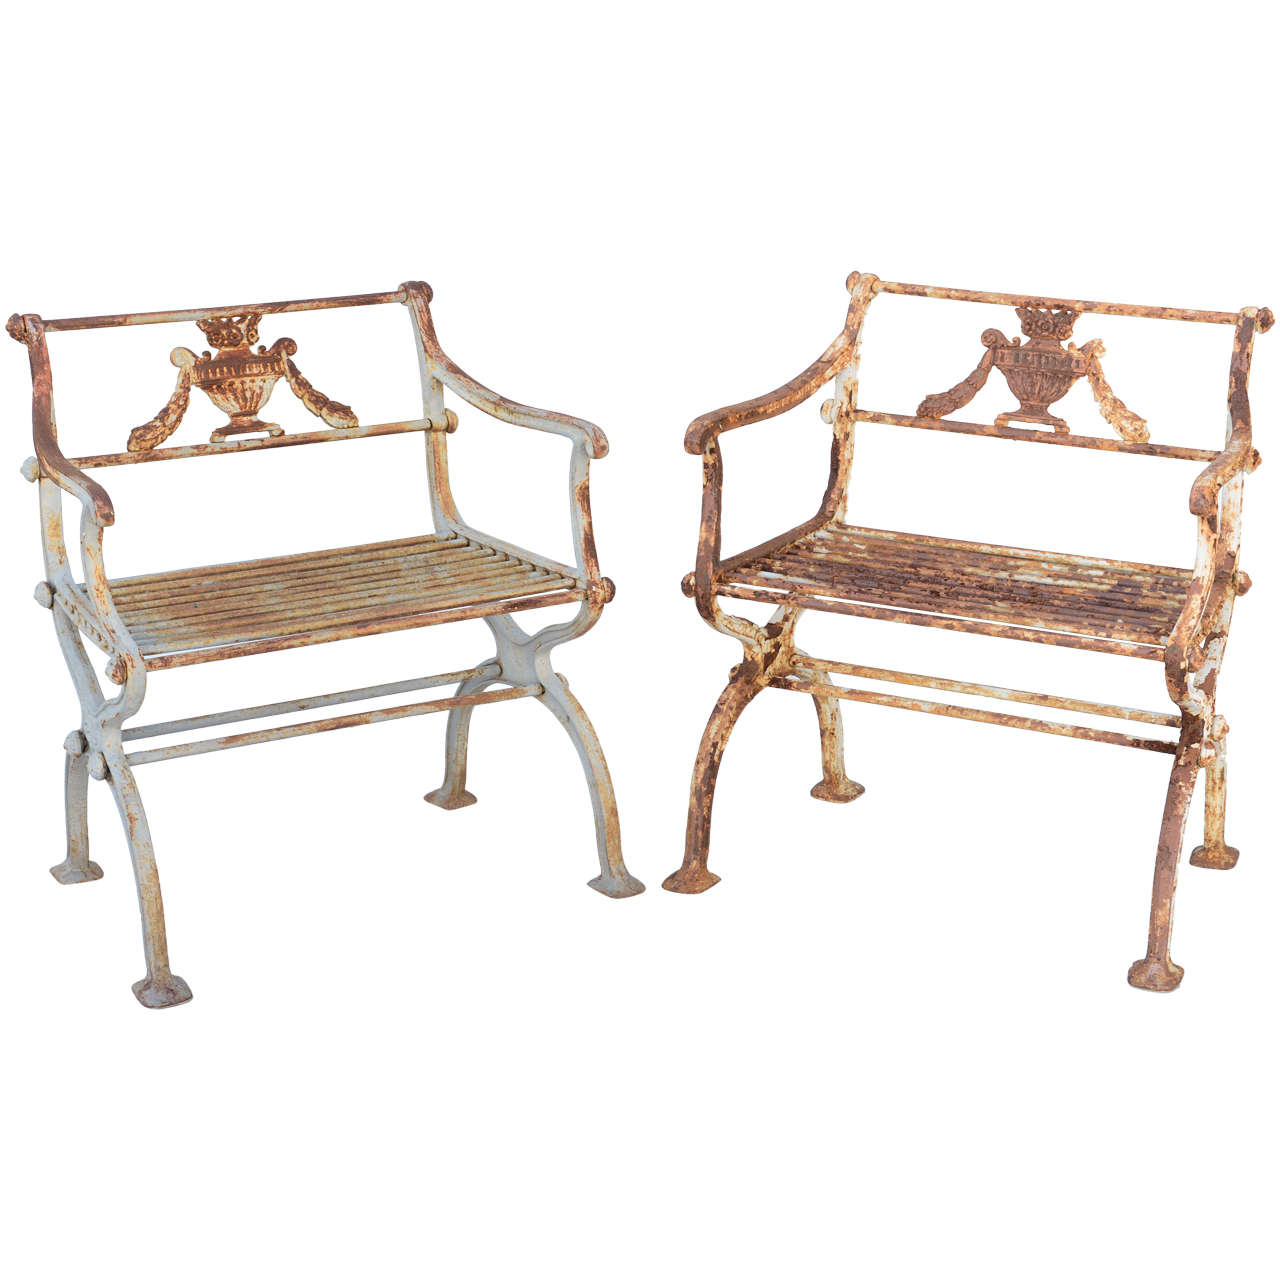 Pair of 19th Century Iron Garden Chairs by Karl Friedrich Schinkel For Sale at 1stdibs